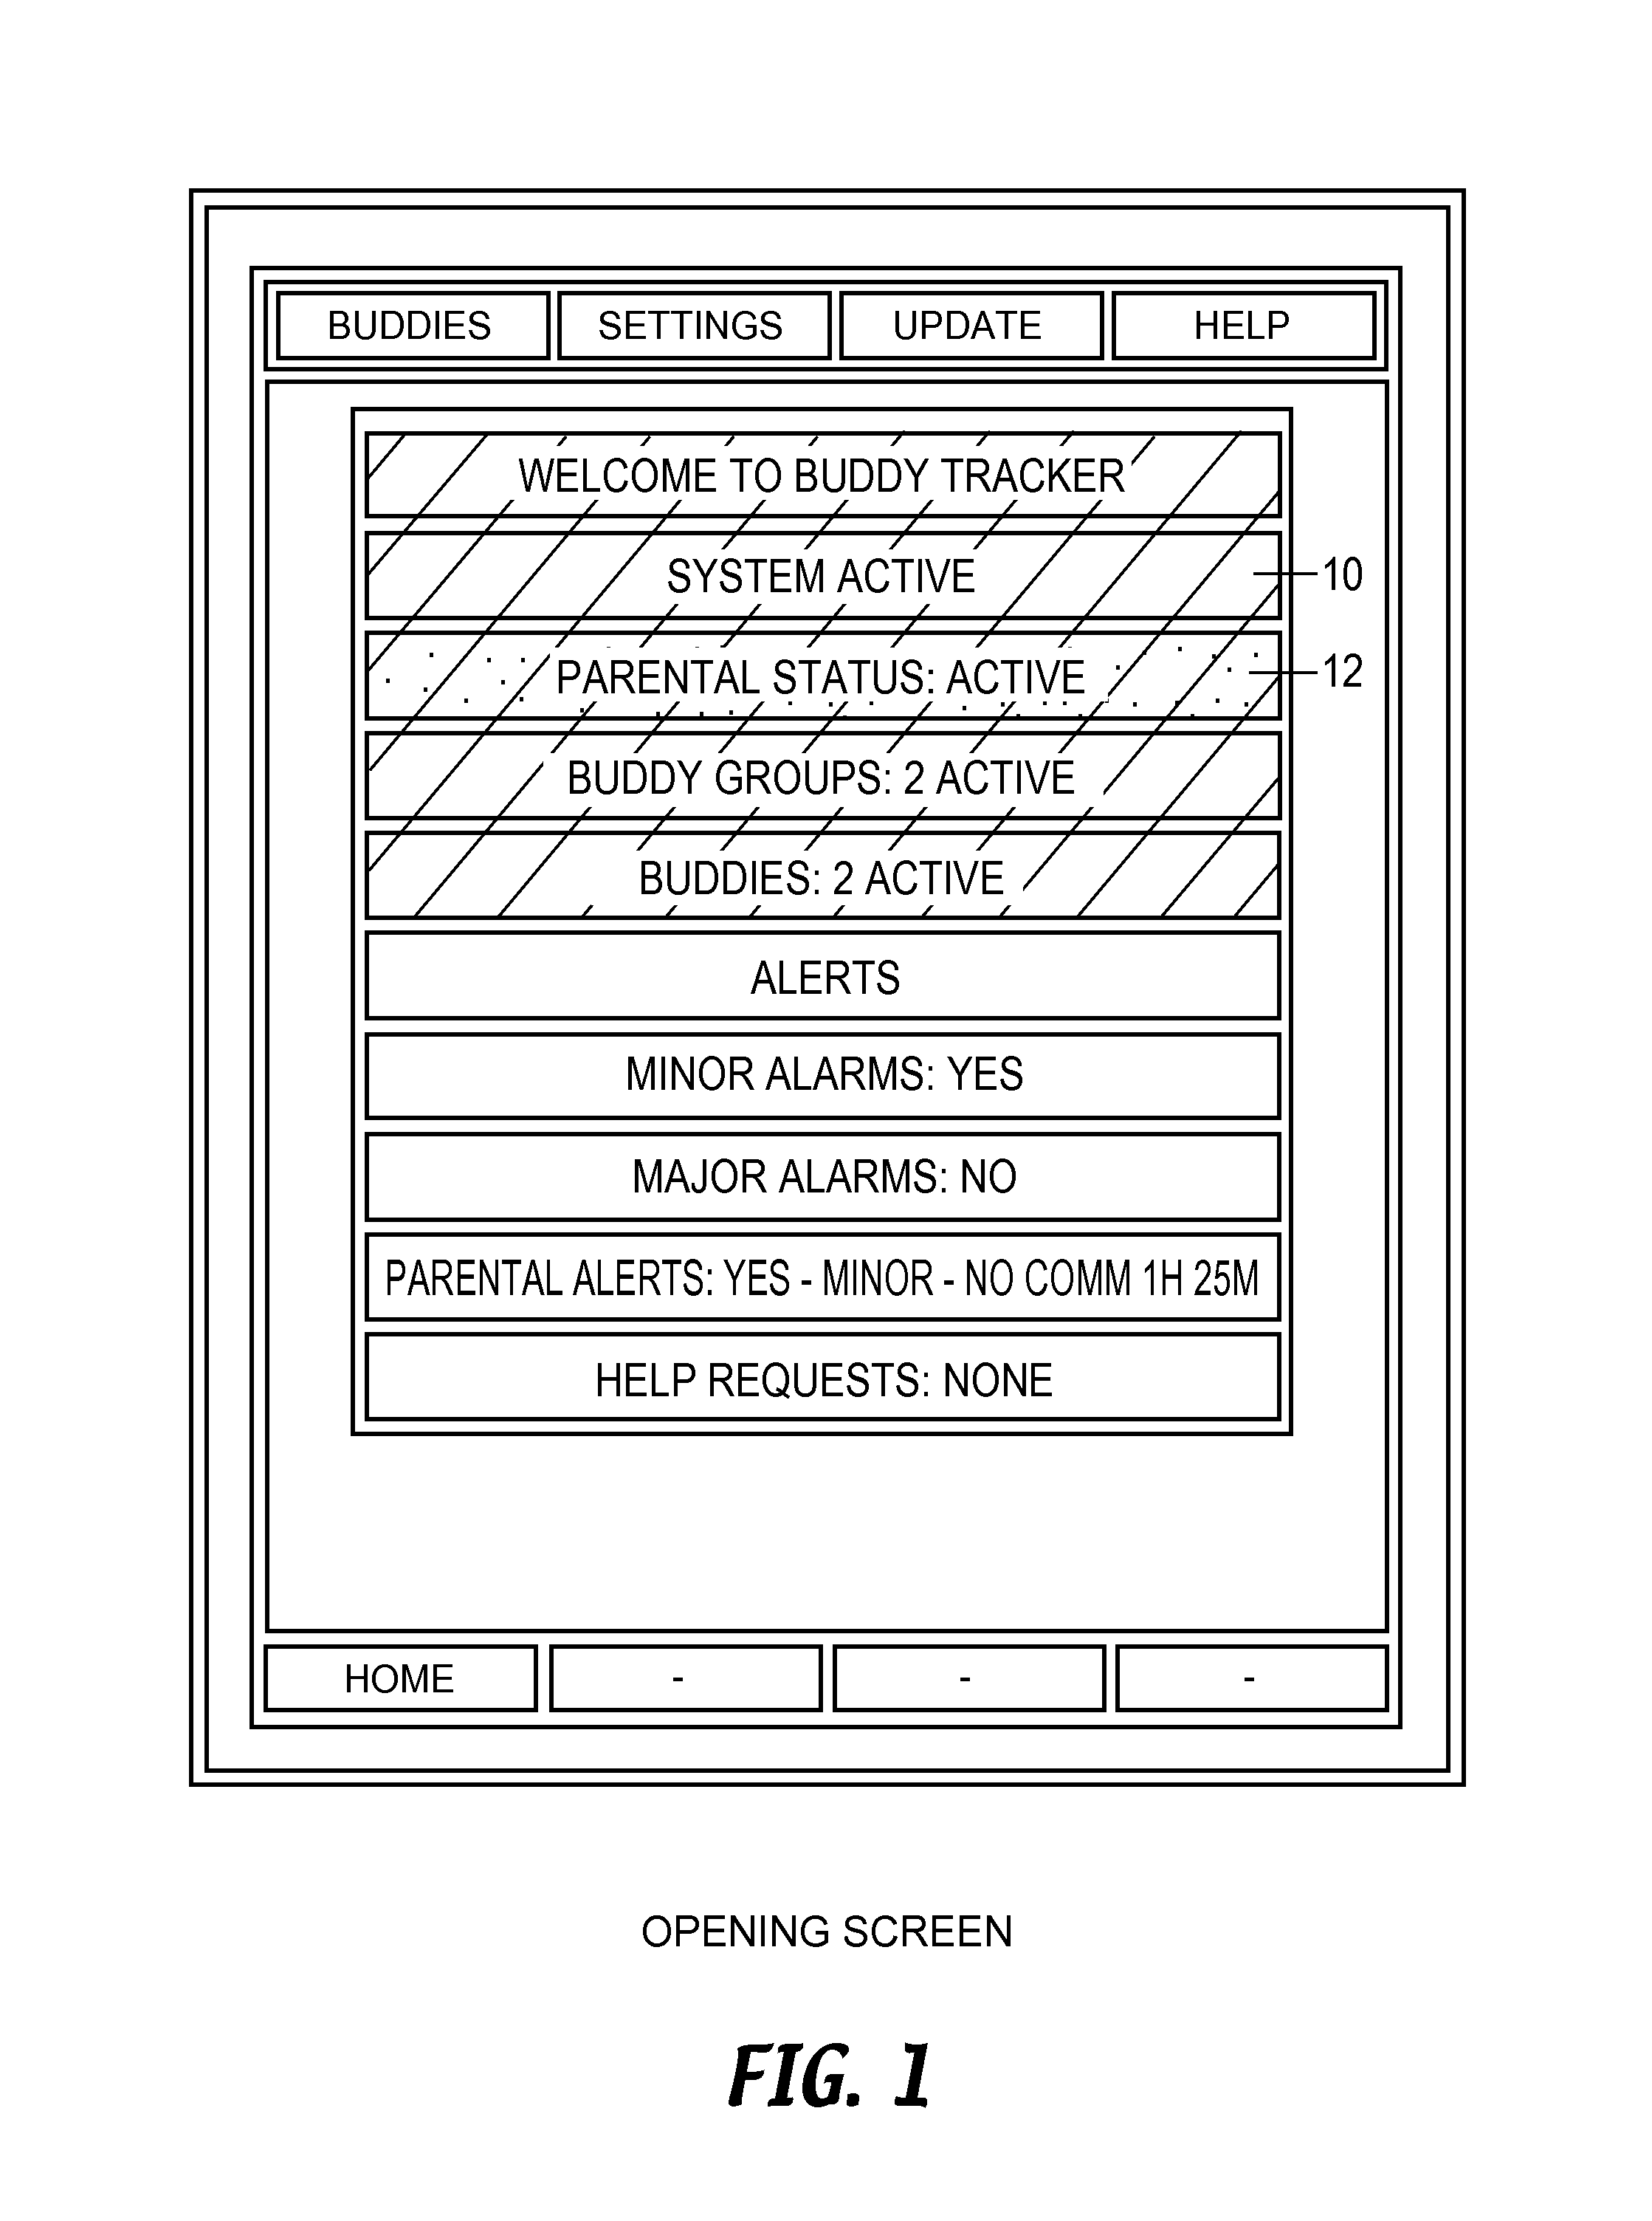 us8798593b2 - location sharing and tracking using mobile phones or